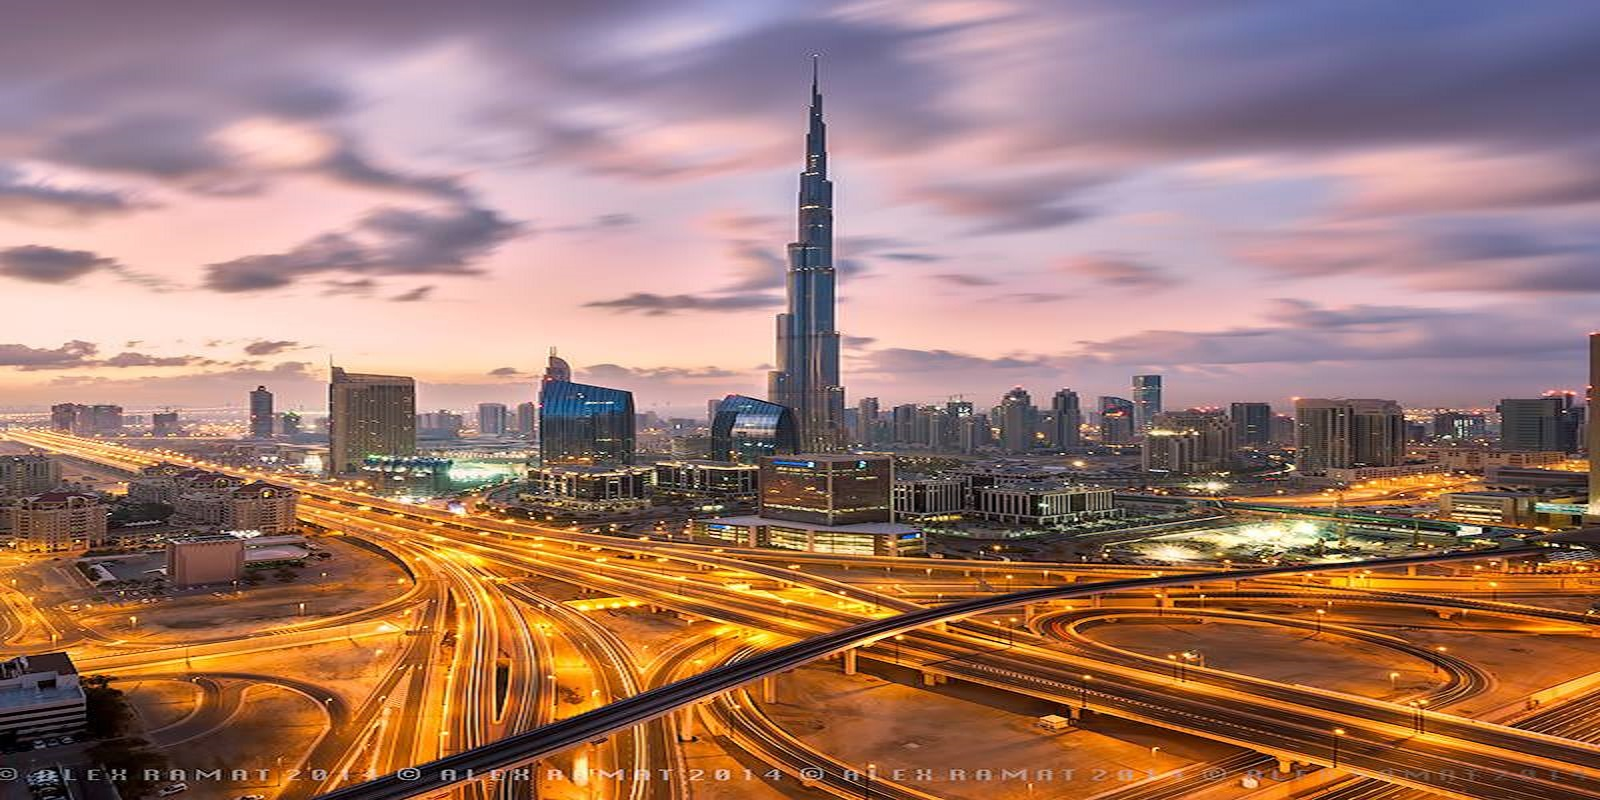 Dubai, United Arab Emirates - burj